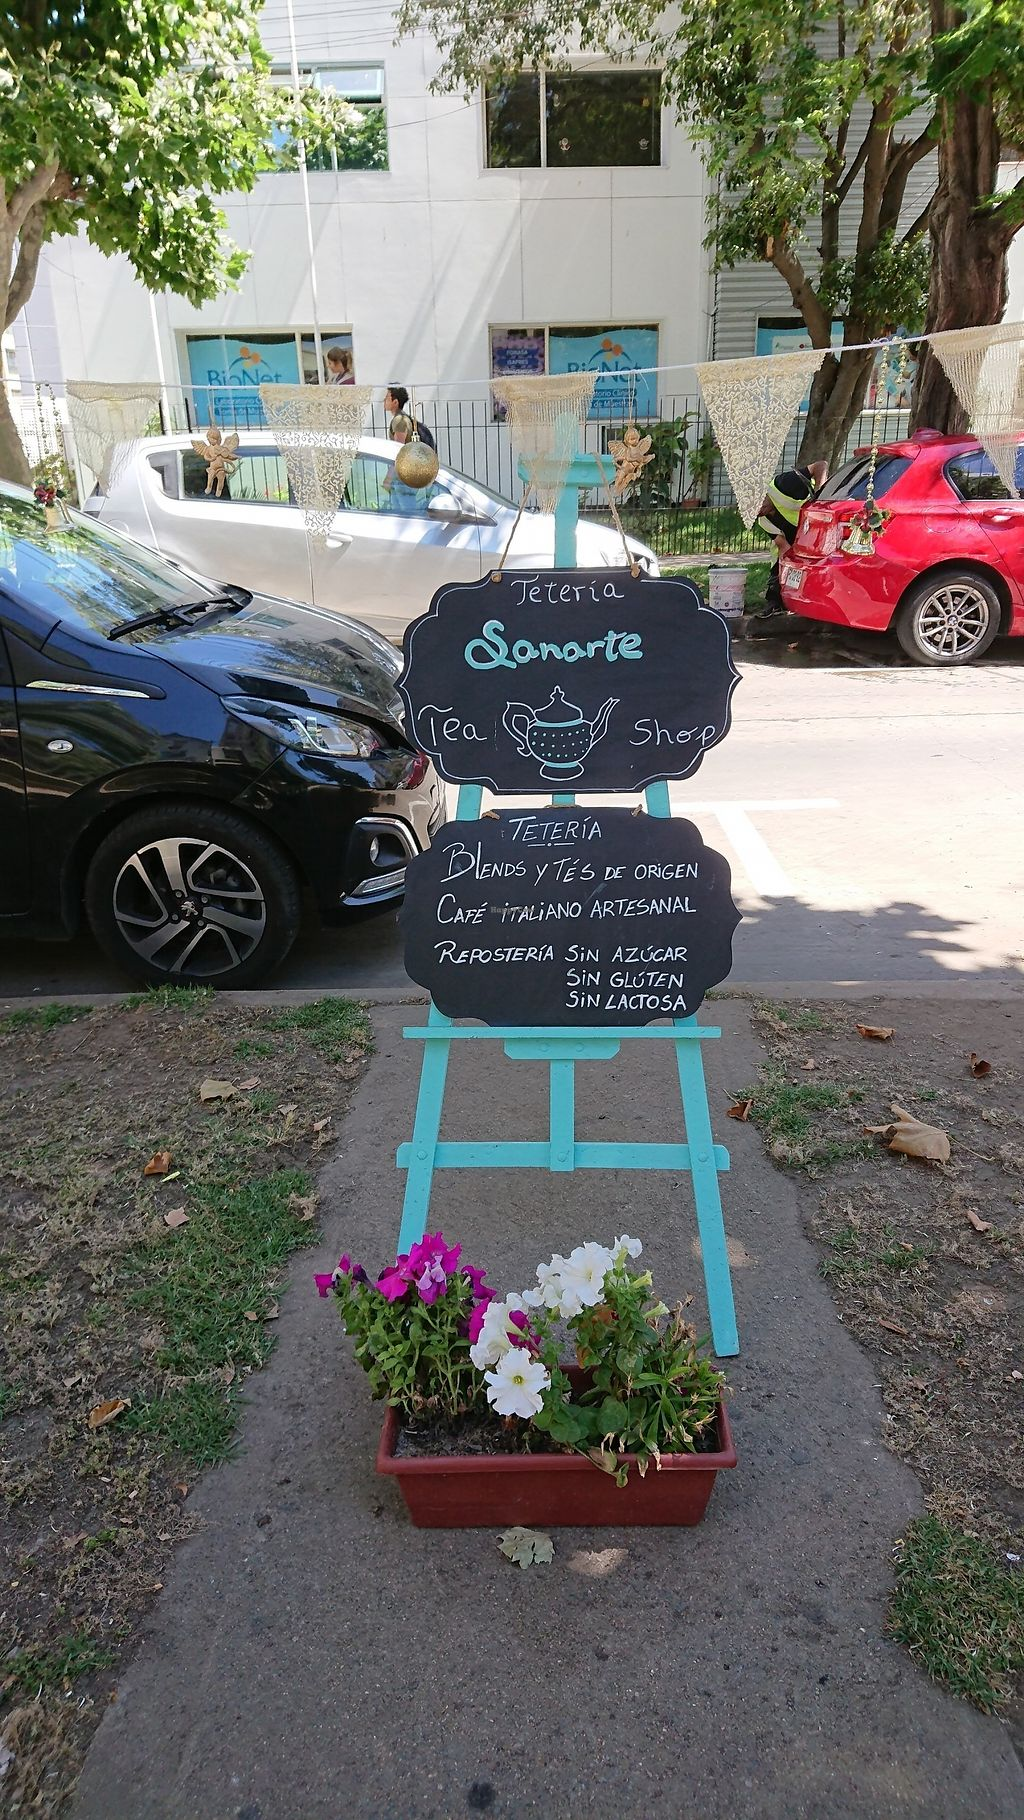 """Photo of Teteria Sanarte  by <a href=""""/members/profile/MoaRichter"""">MoaRichter</a> <br/>Teteria that also serves lunch  <br/> December 17, 2017  - <a href='/contact/abuse/image/107473/336639'>Report</a>"""